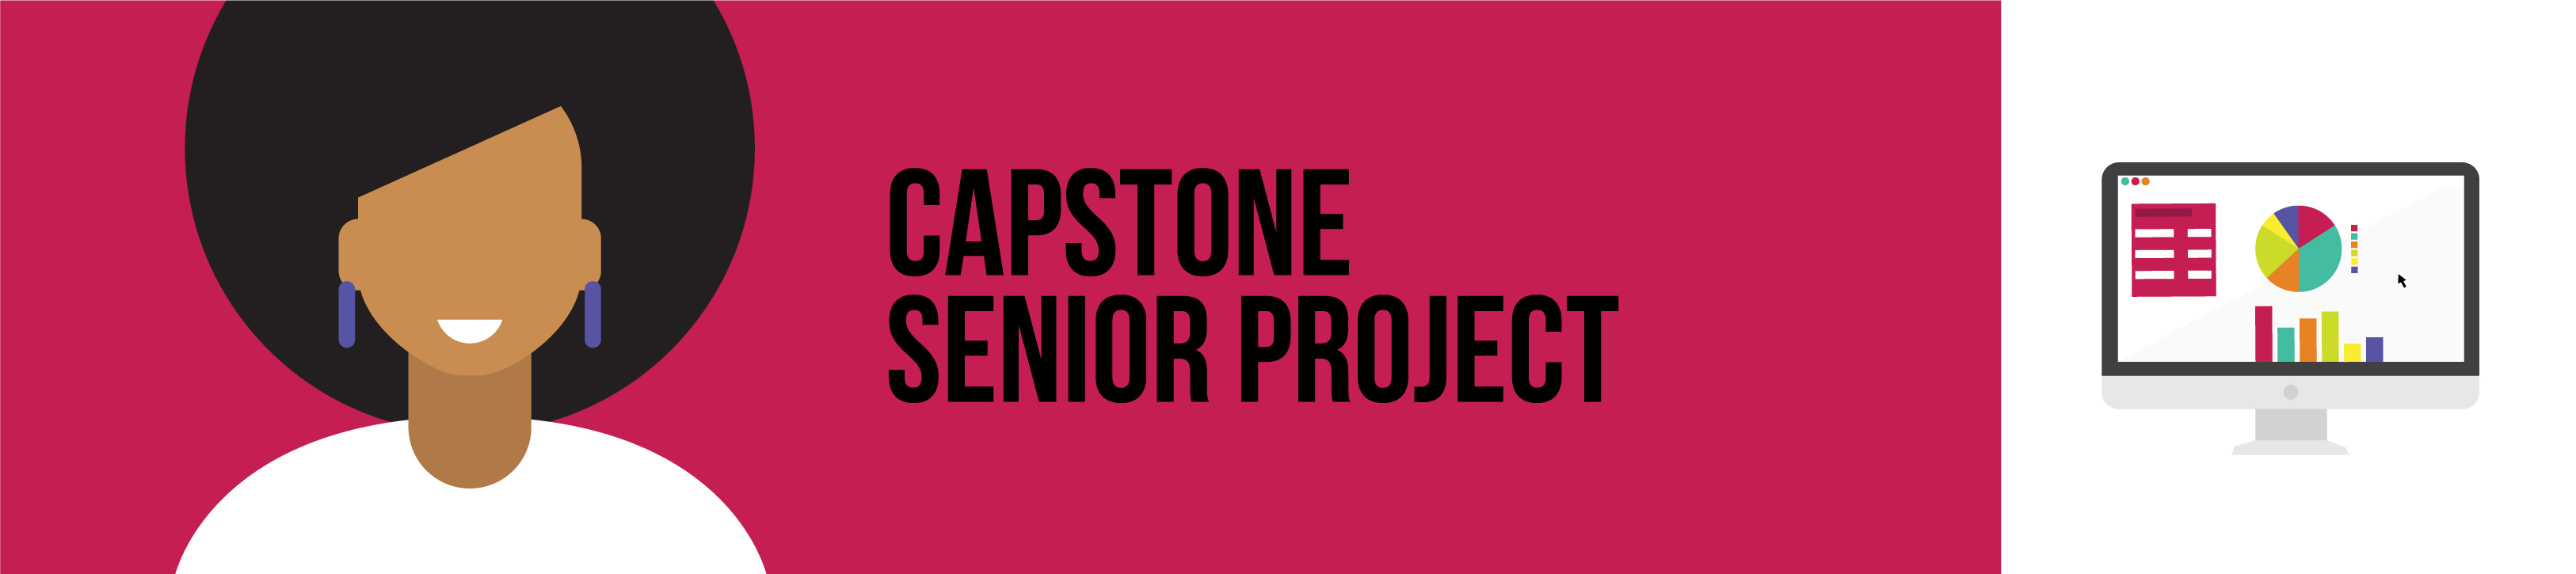 capstone senior project